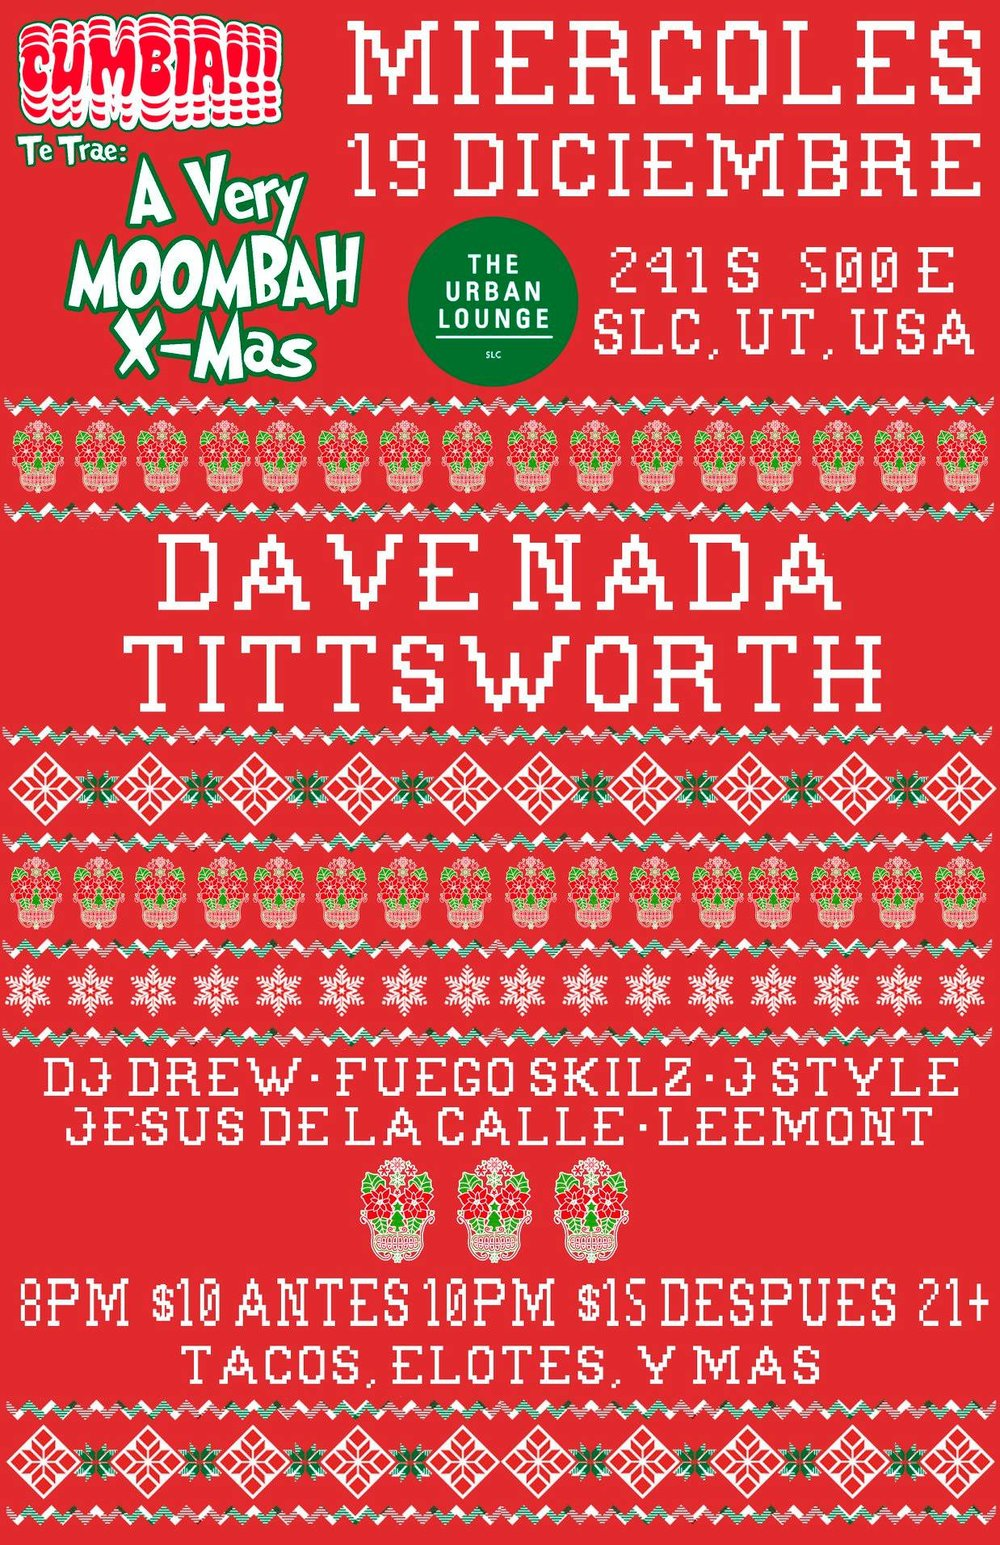 CUMBIA! night featuring dave nada and tittsworth